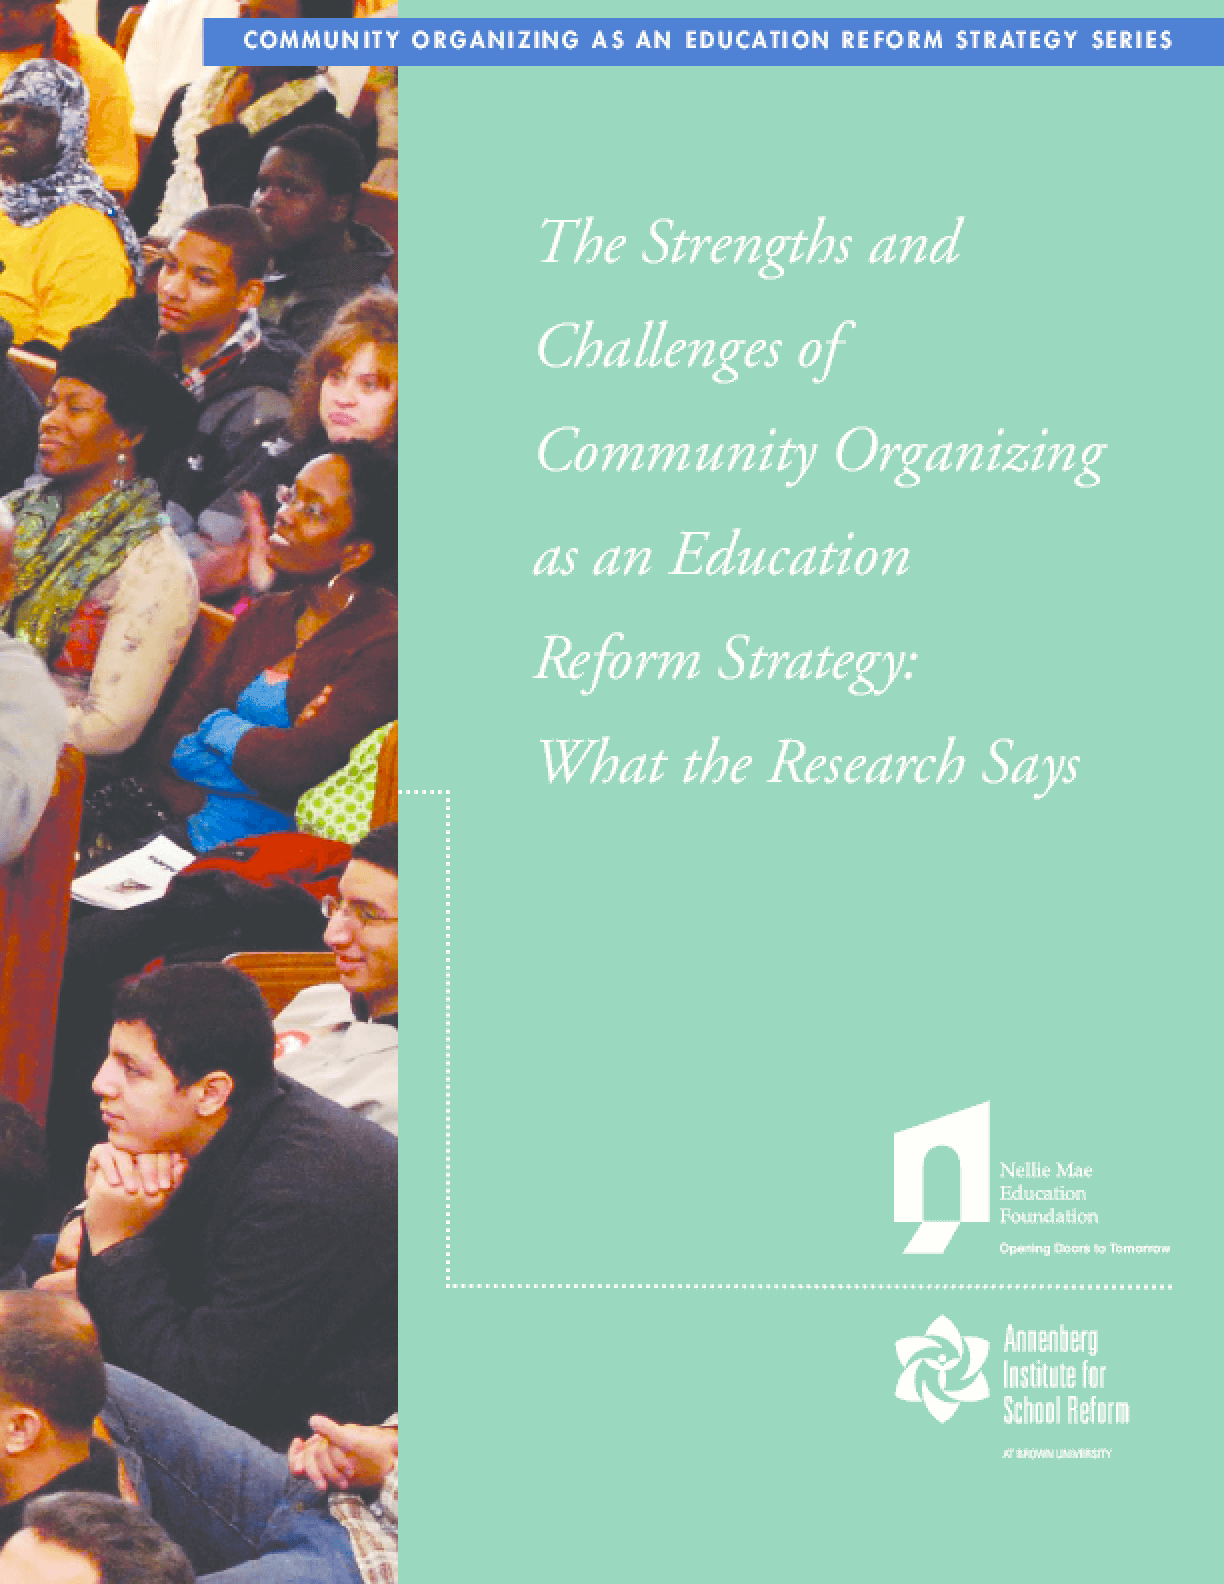 The Strengths & Challenges of Community Organizing as an Education Reform Strategy